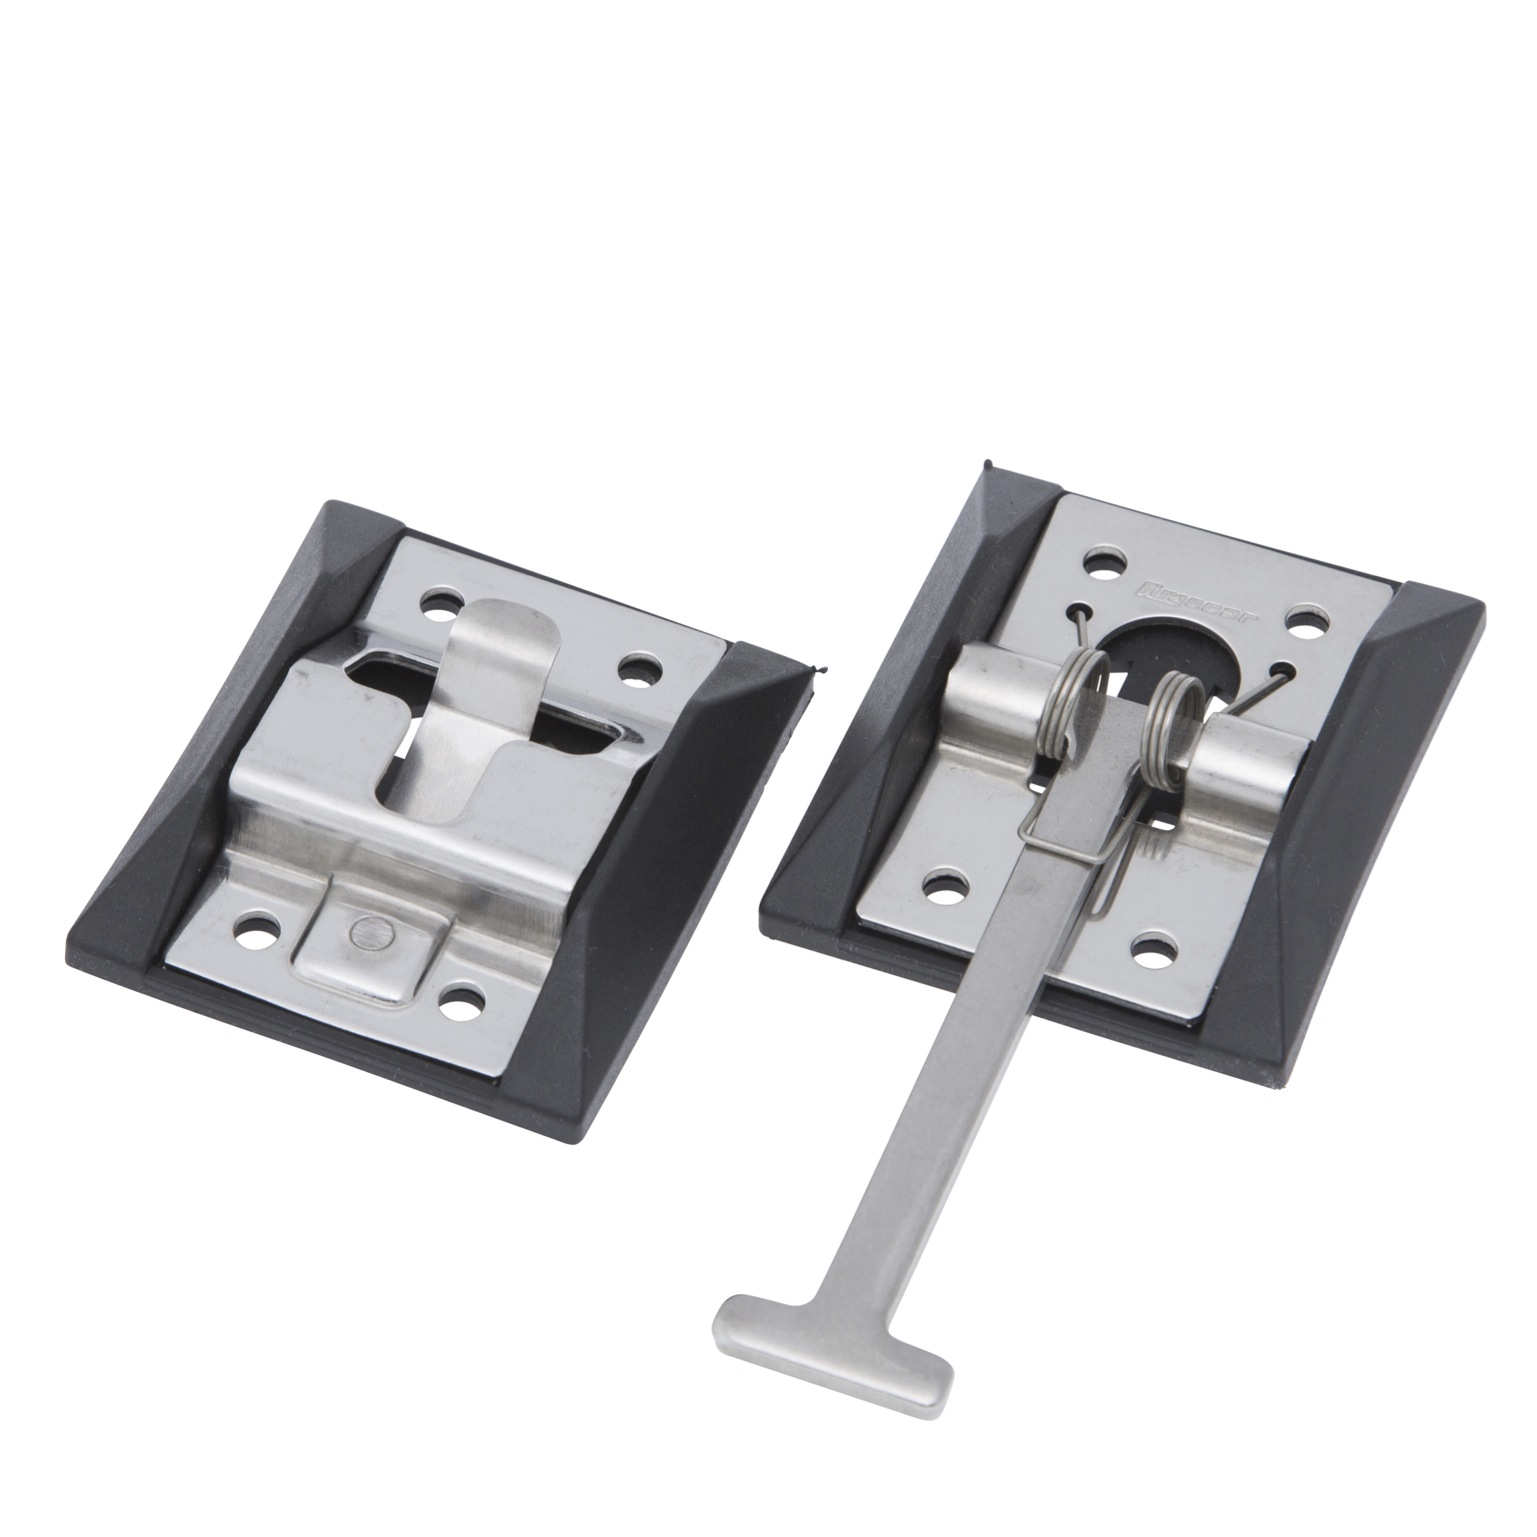 S/S Door Retainer Pair